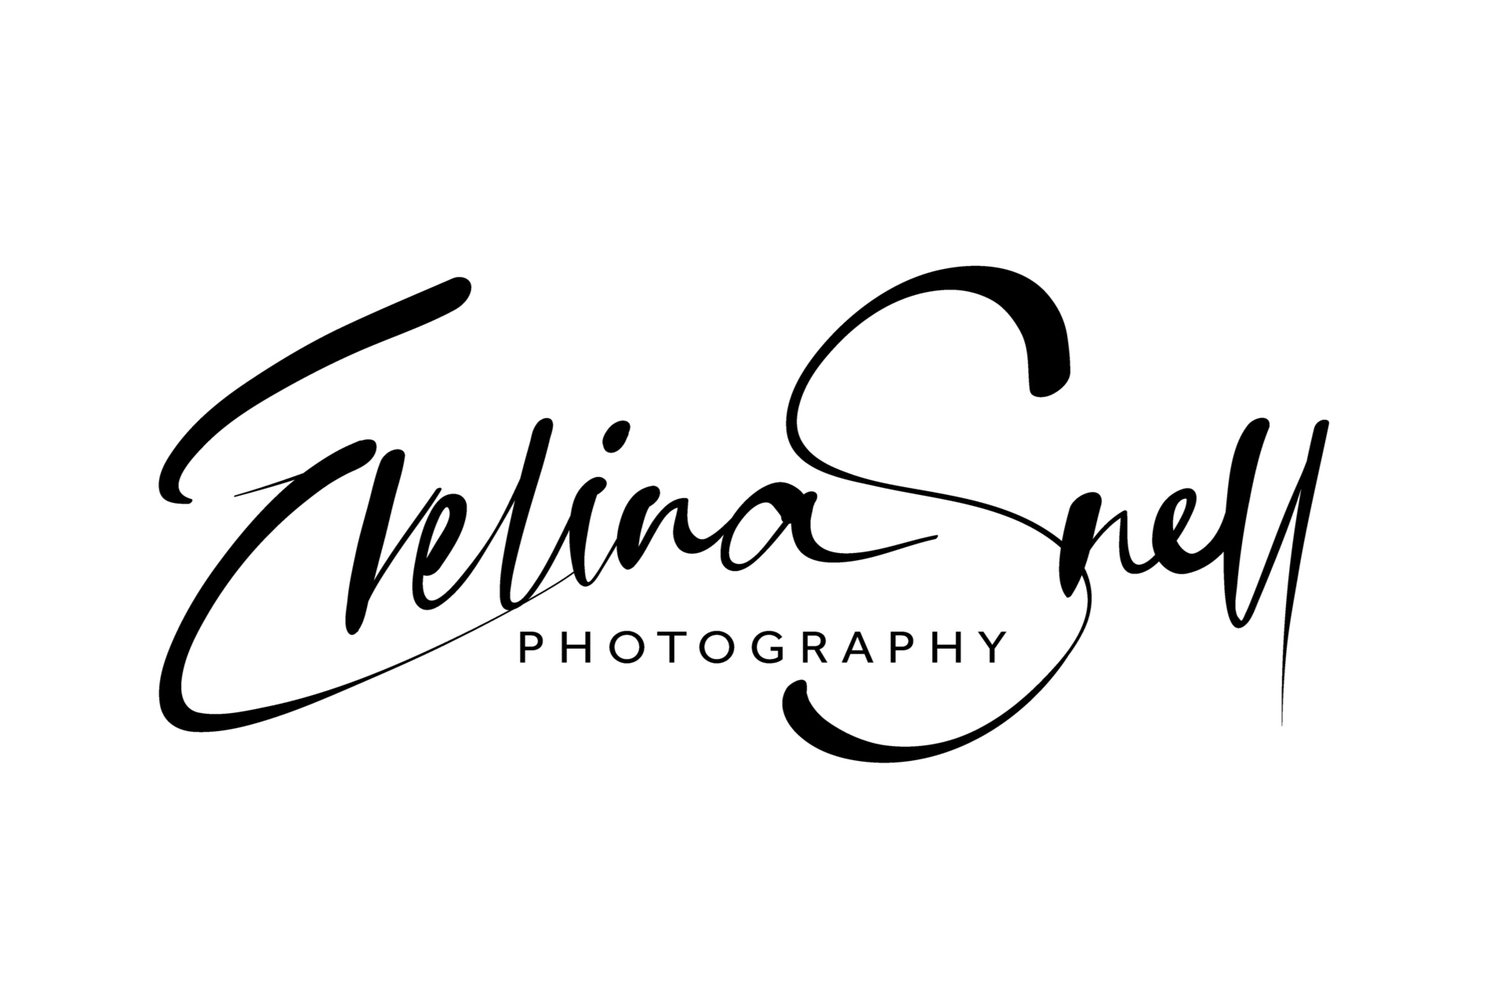 Evelina Snell Photography